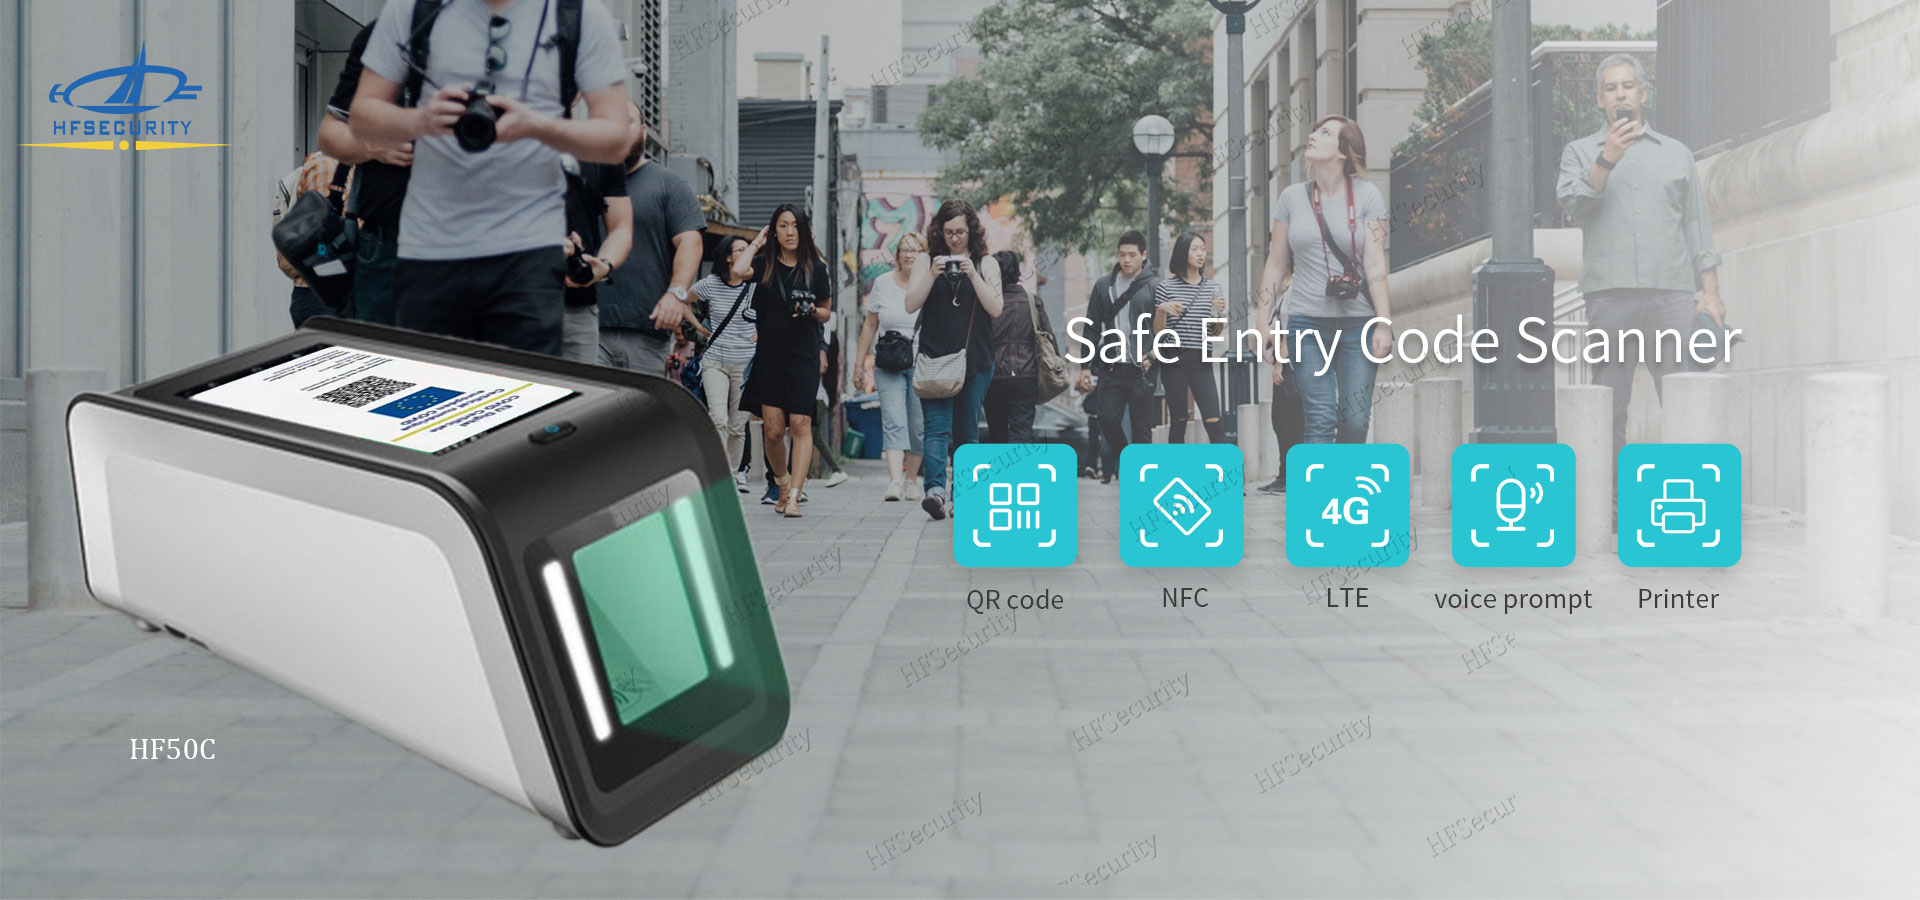 HFSecurity Smart Android Health Code Device